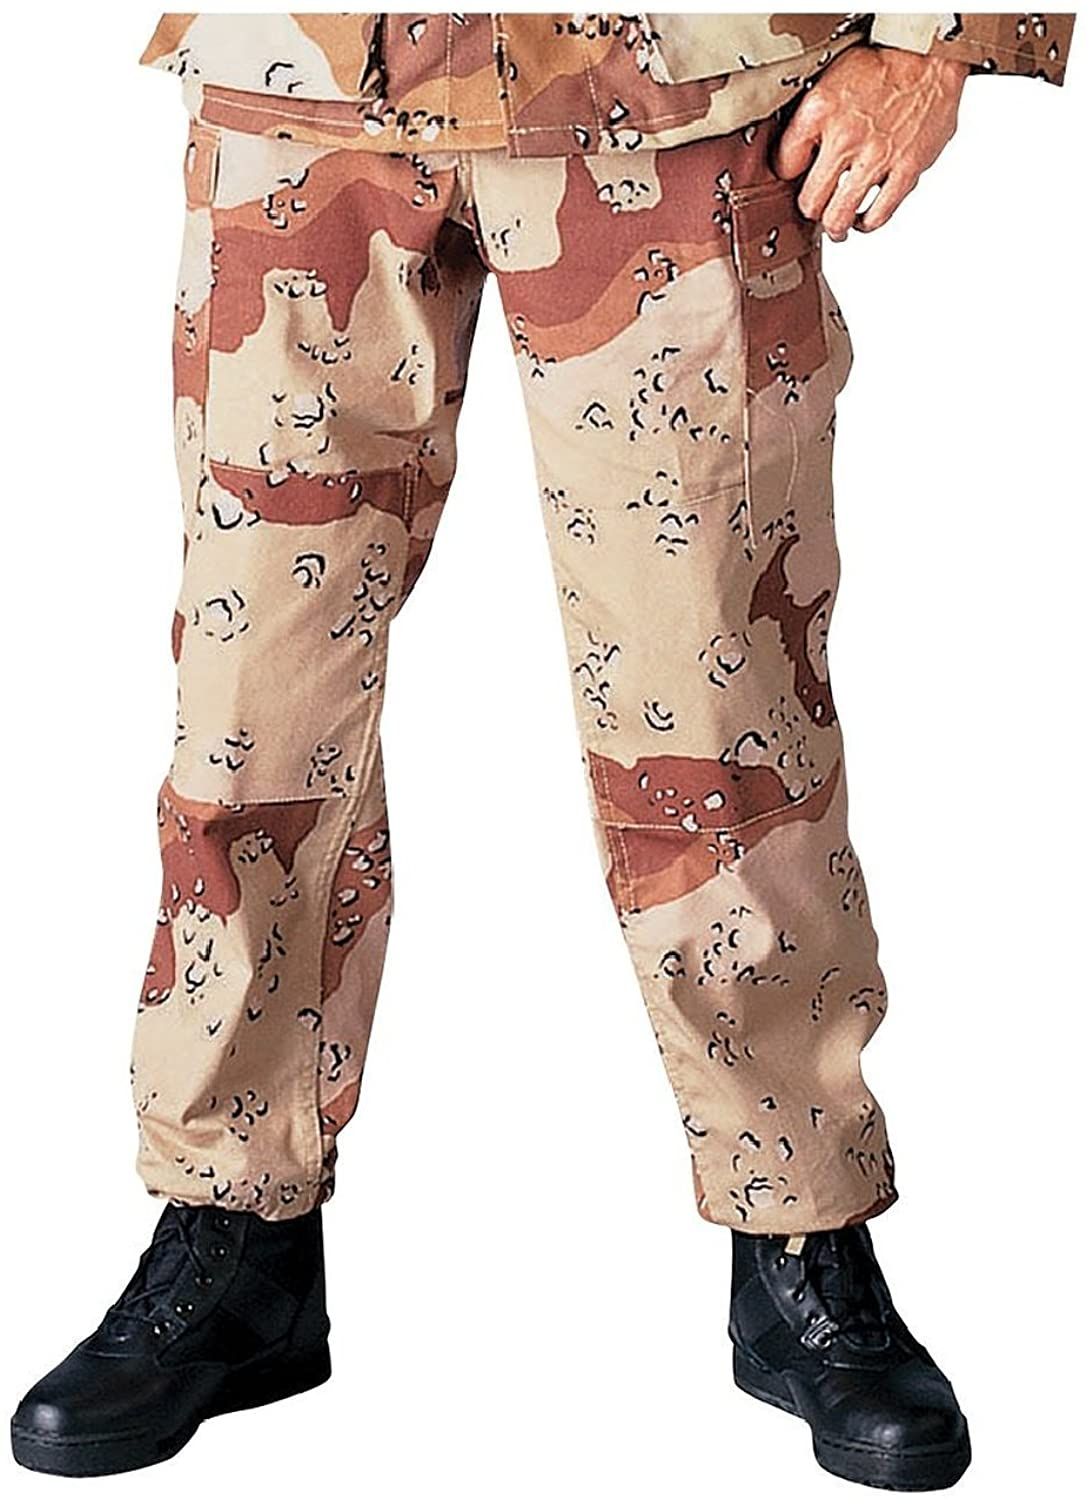 Camouflage Military BDU Pants, Army Cargo Fatigues (Desert Camouflage, Size Medium)